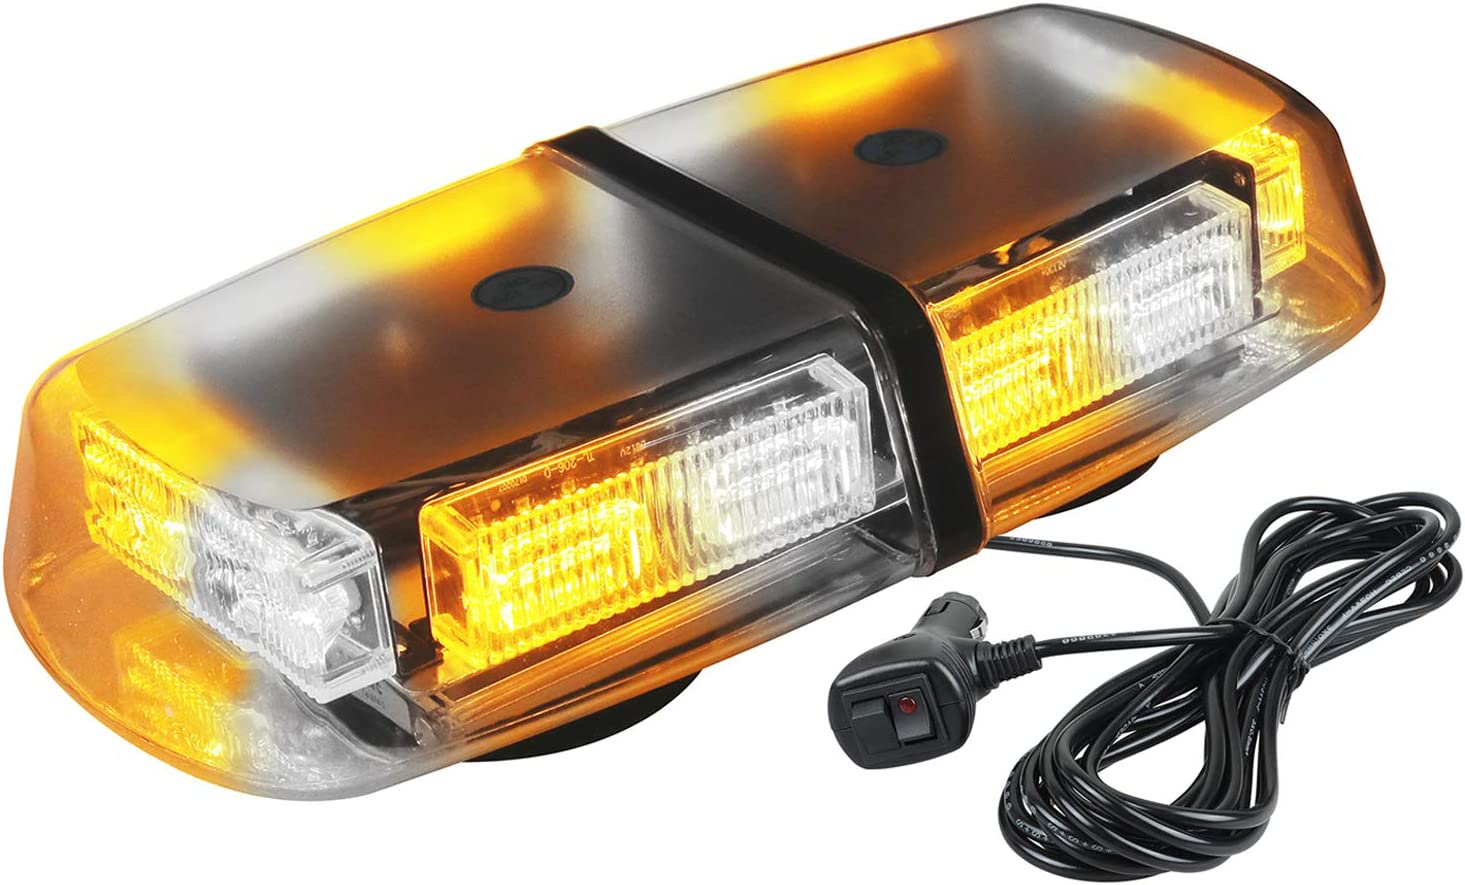 ASPL 36LED 12V High Intensity Law Enforcement Emergency Hazard Warning LED Mini Bar Strobe Light with Magnetic Base for Snow Plow, Trucks, Construction Vehicles (Amber/White)